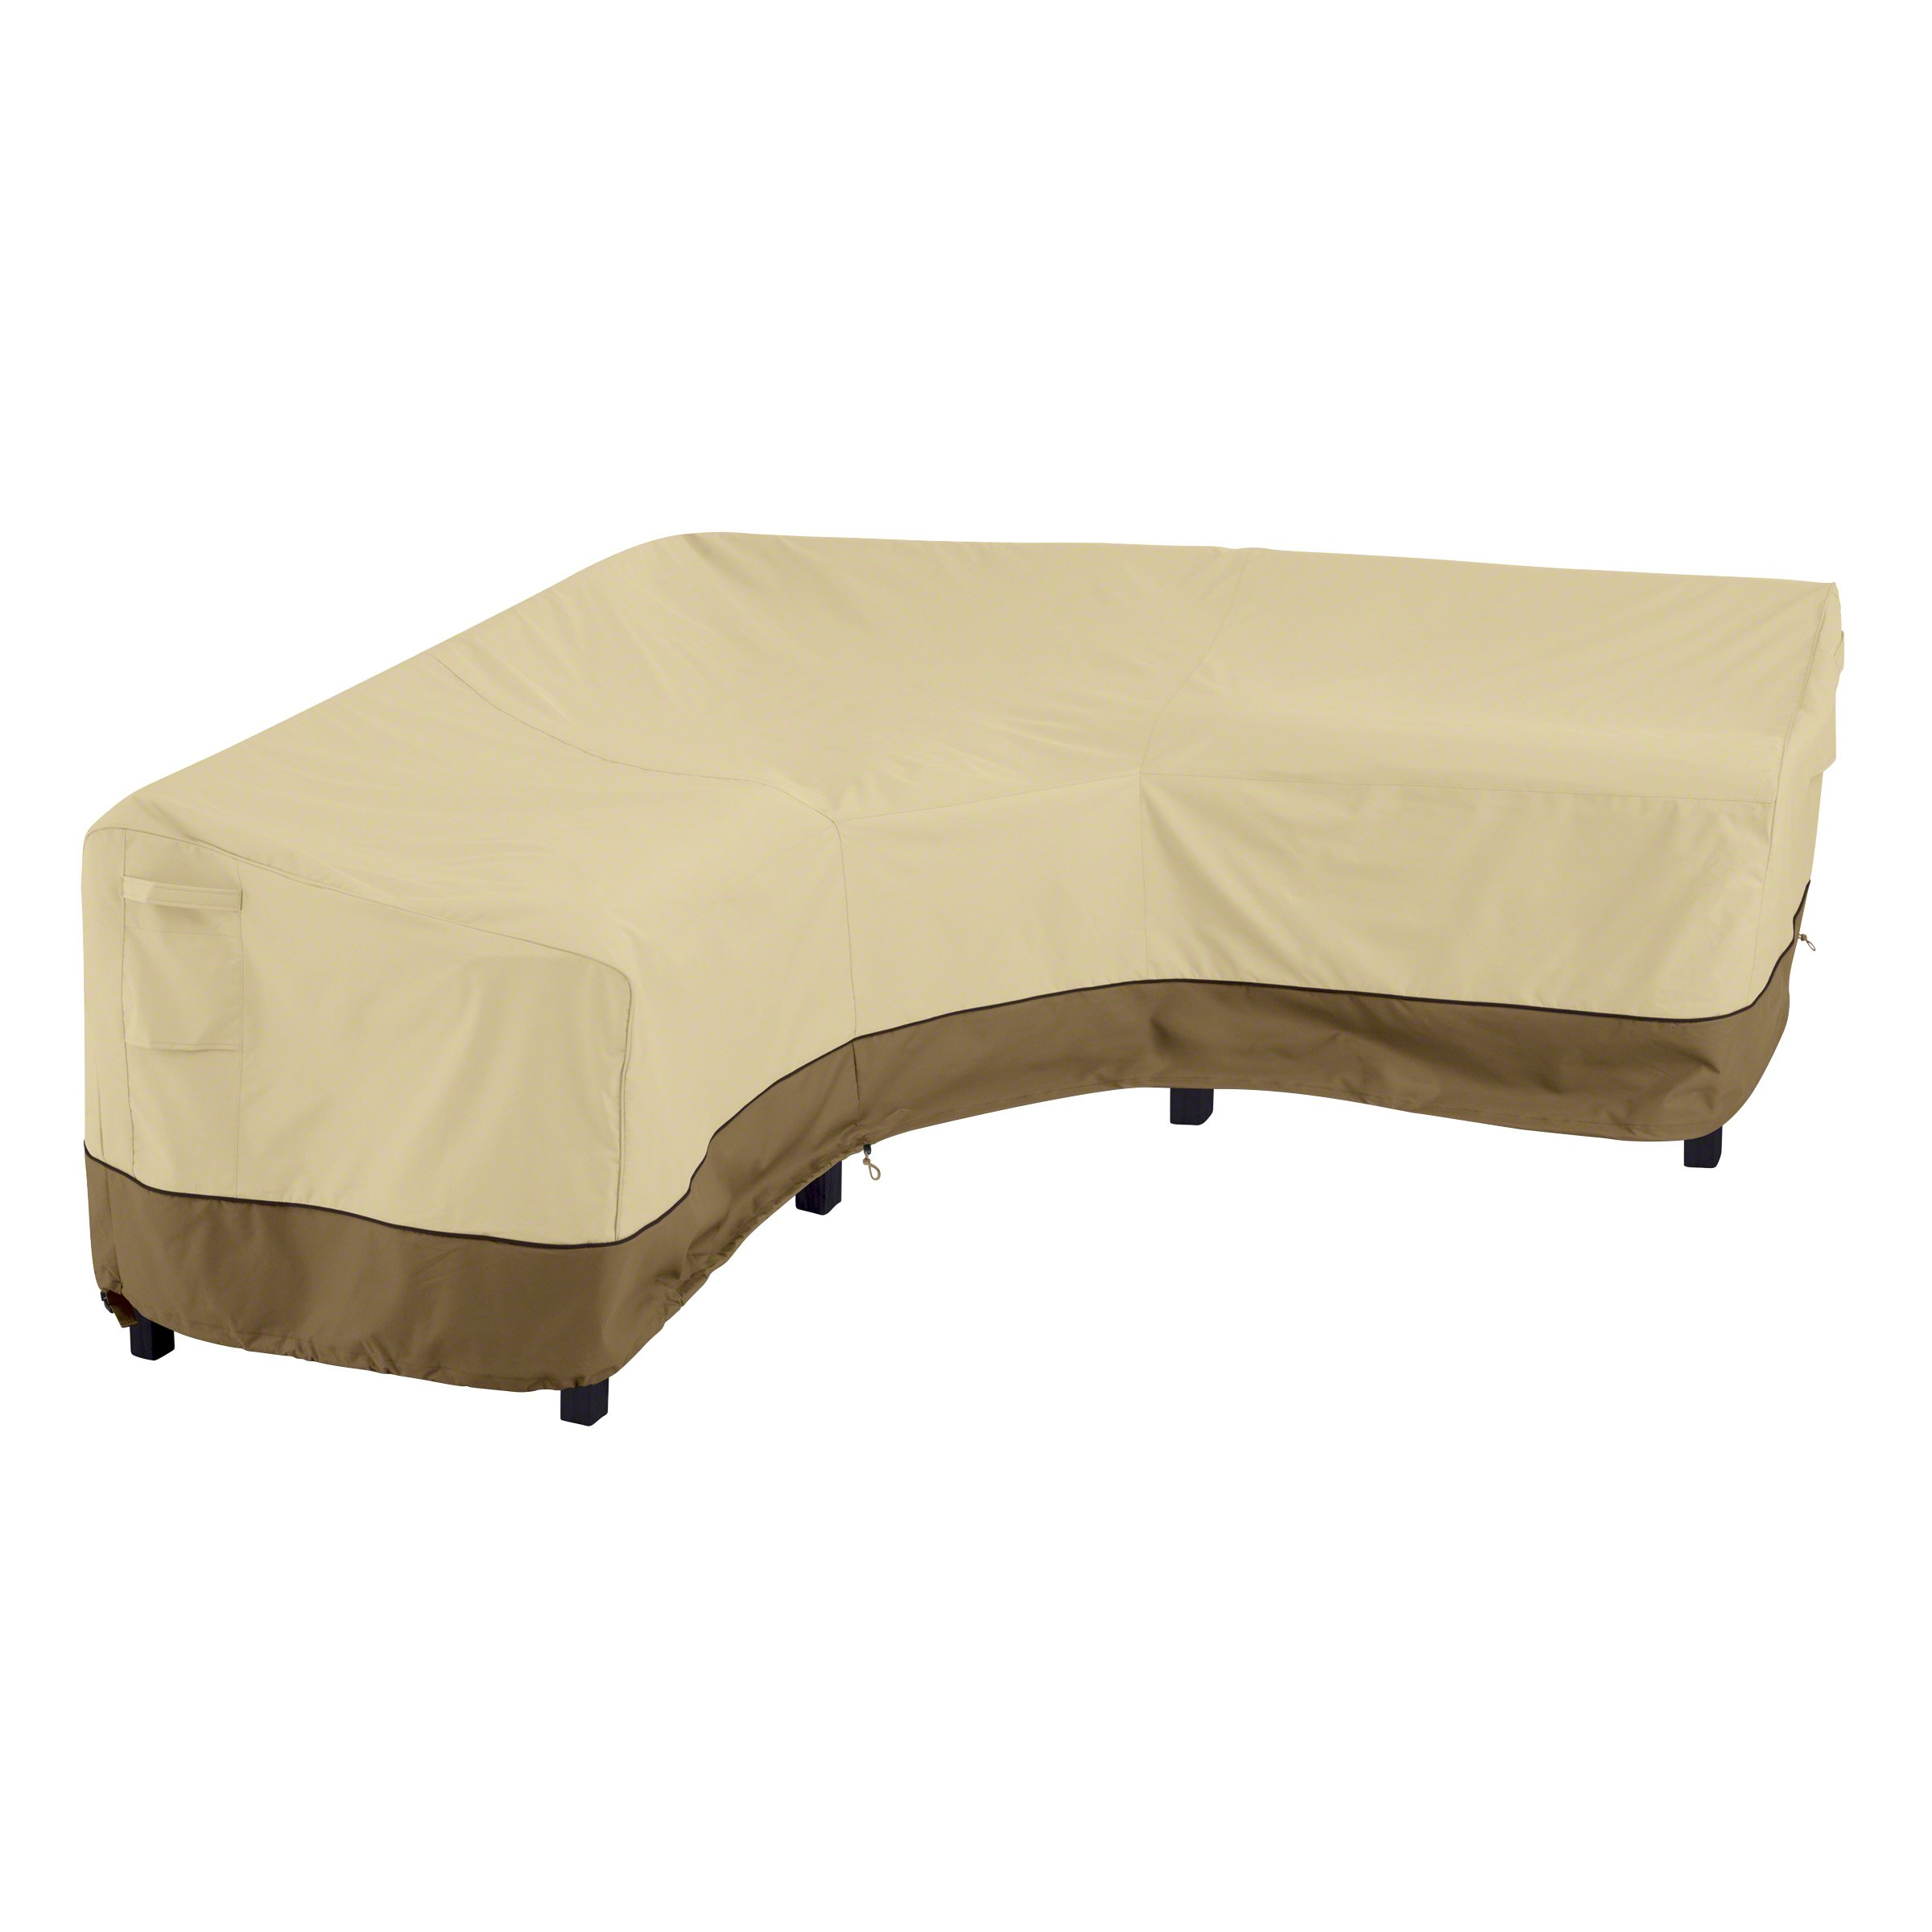 Classic Accessories 55-882-011501-RT Veranda Patio V-Shaped Sectional Sofa Cover, V-Shaped product image